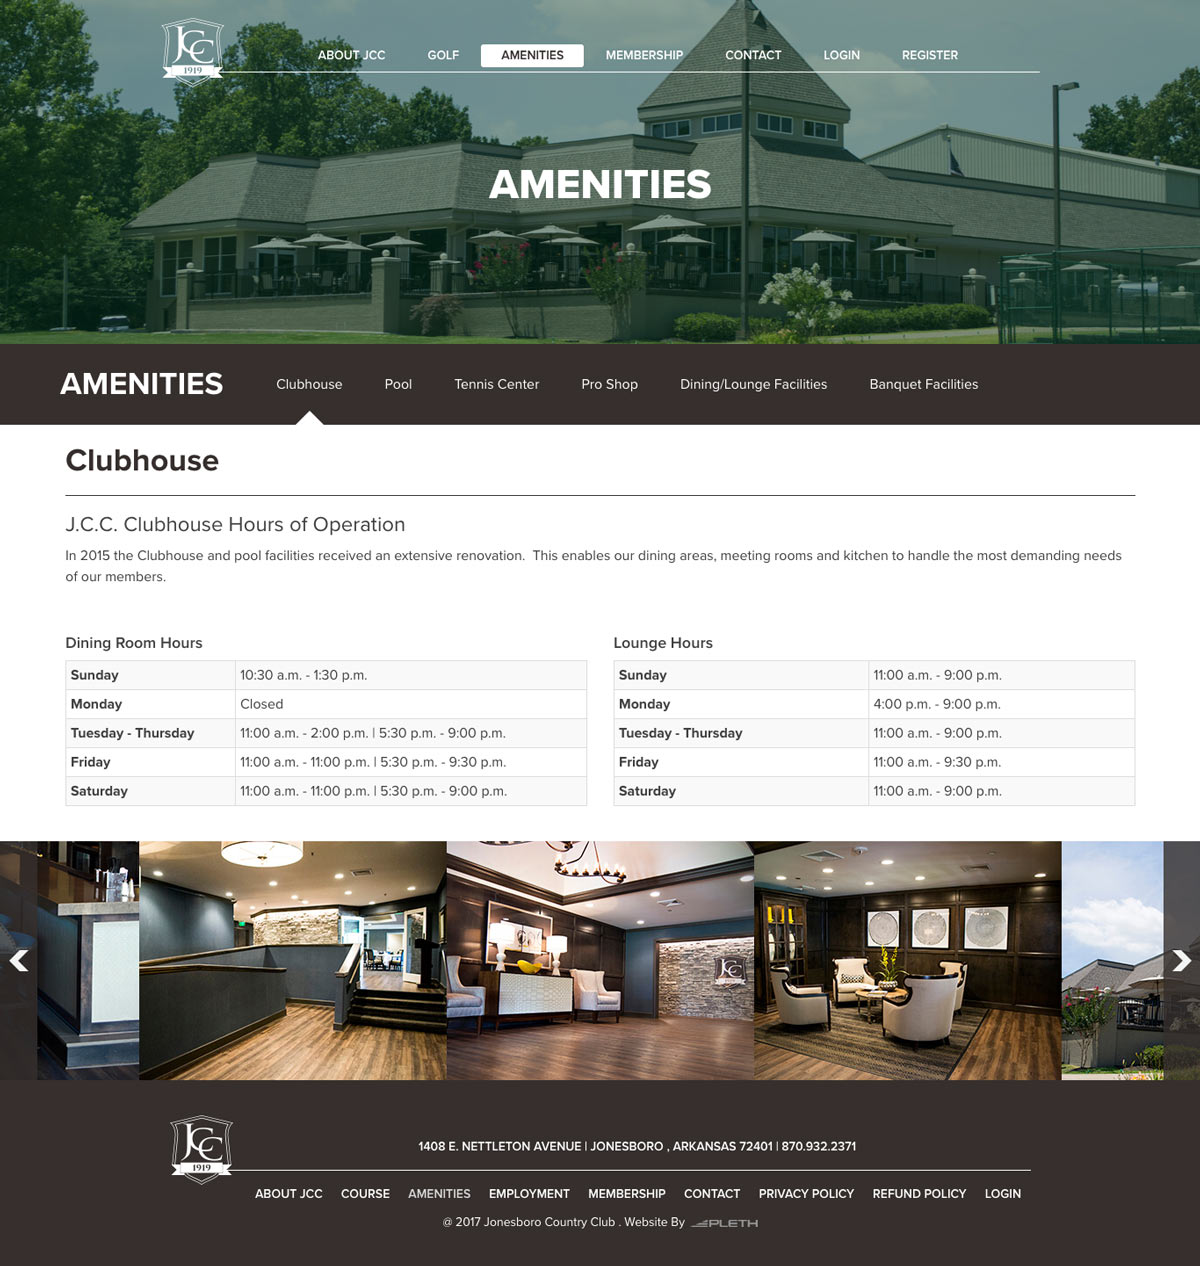 Jonesboro Country Club Amenities page